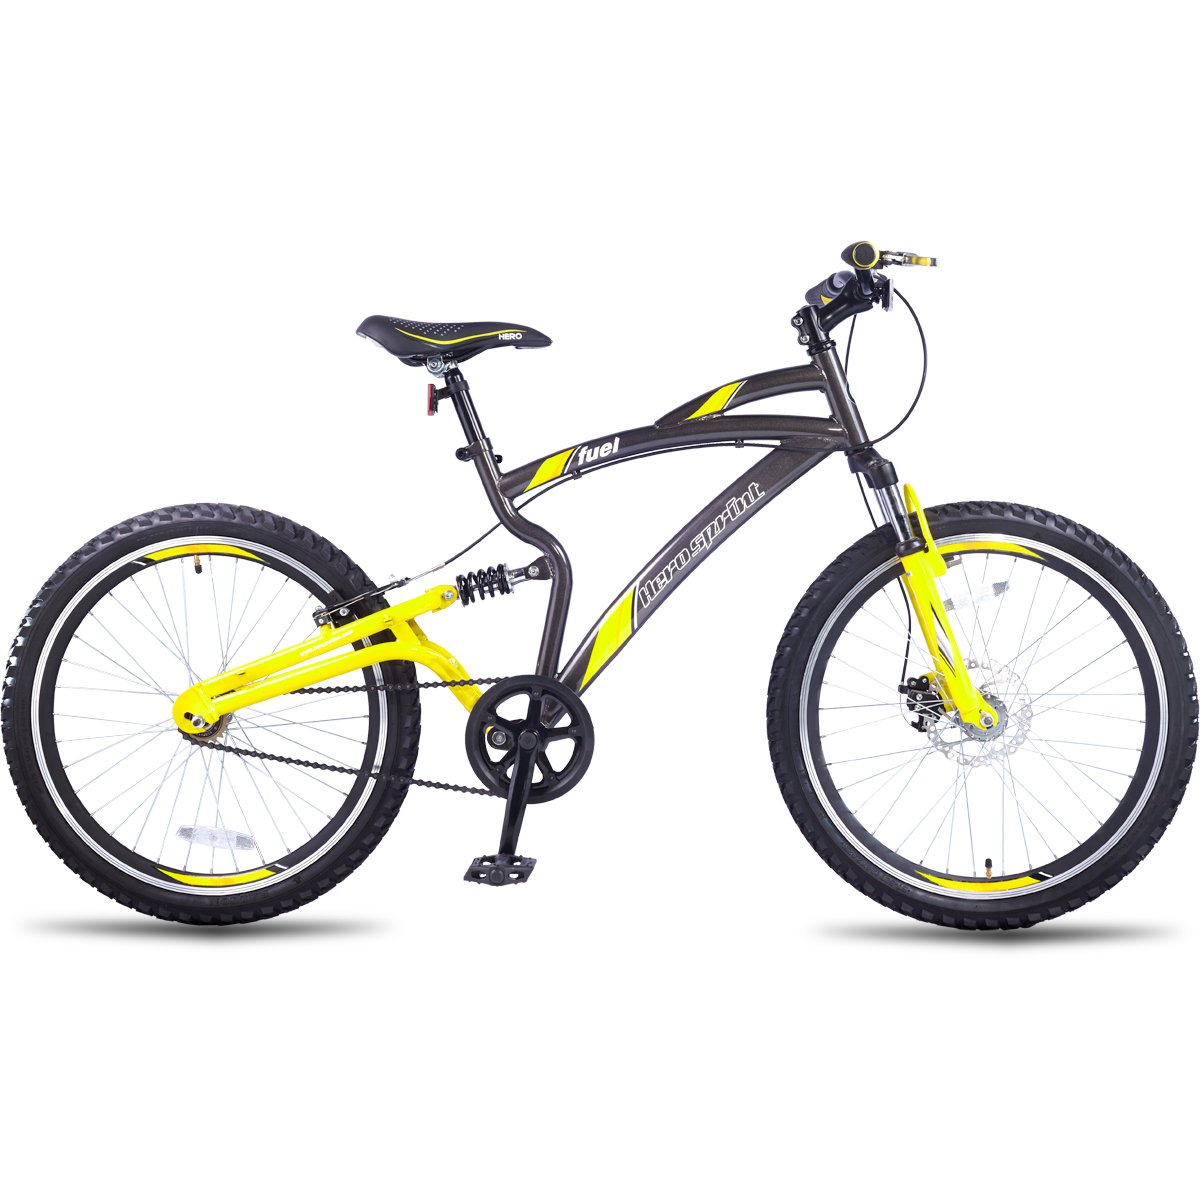 Hero Sprint Fuel Single speed Adult Cycle (Grey/Yellow) By Amazon @ Rs.9,679